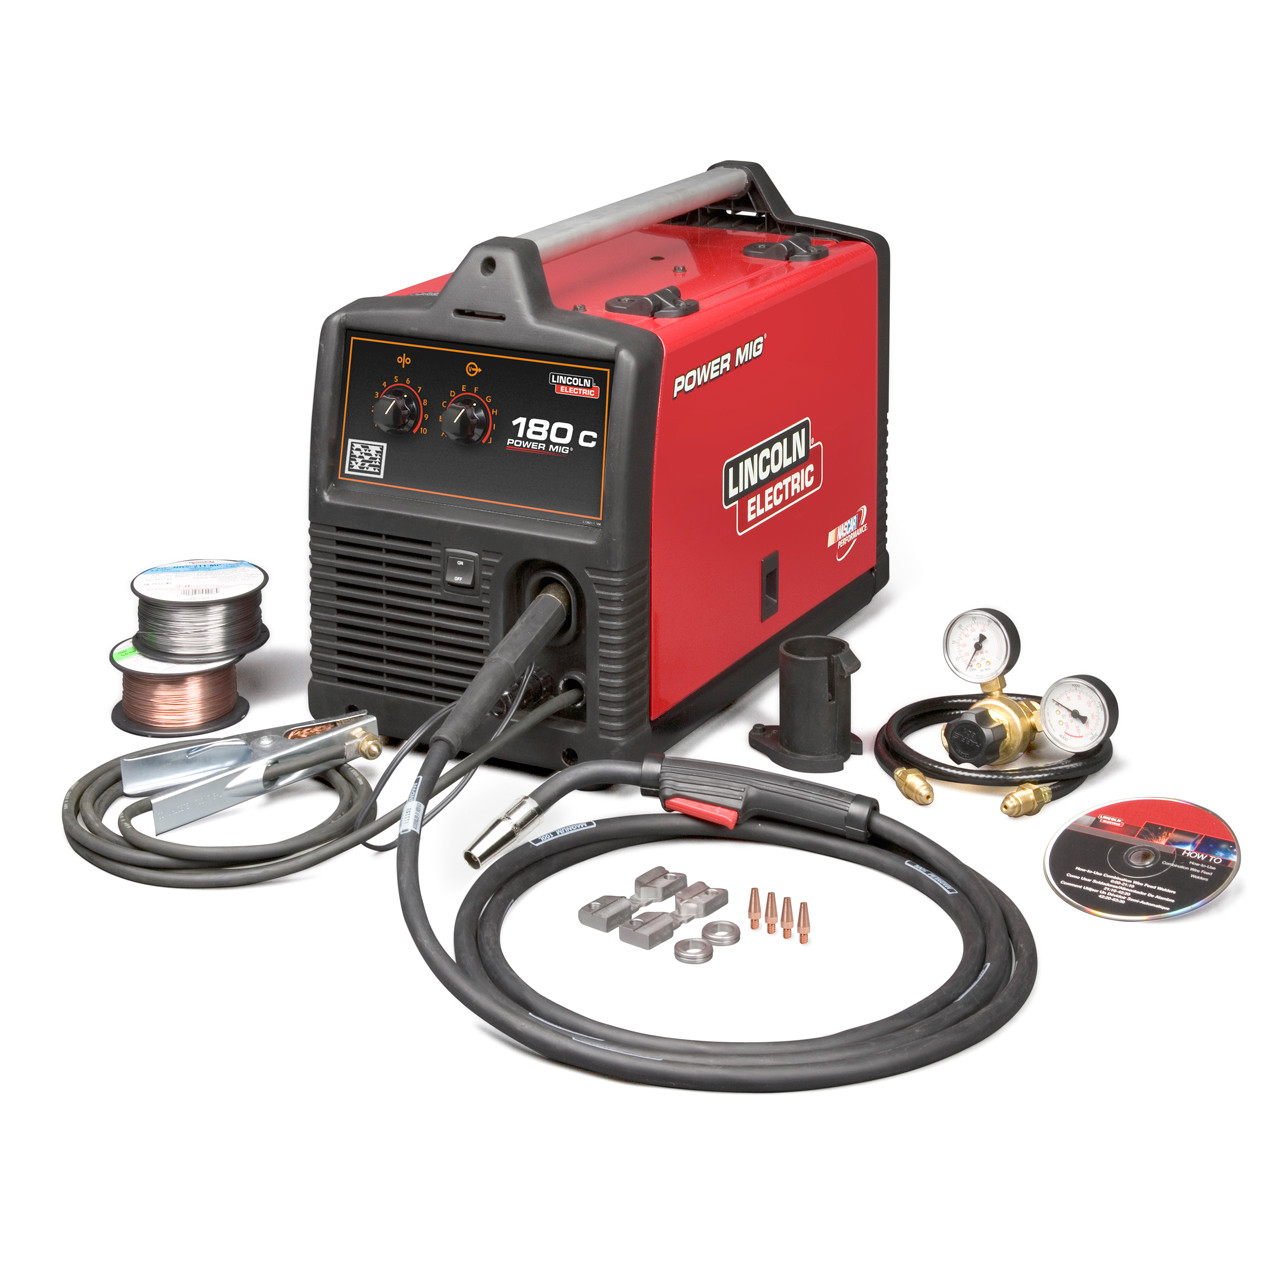 Lincoln Electric Power Mig 180c Mig Welder K2473 2